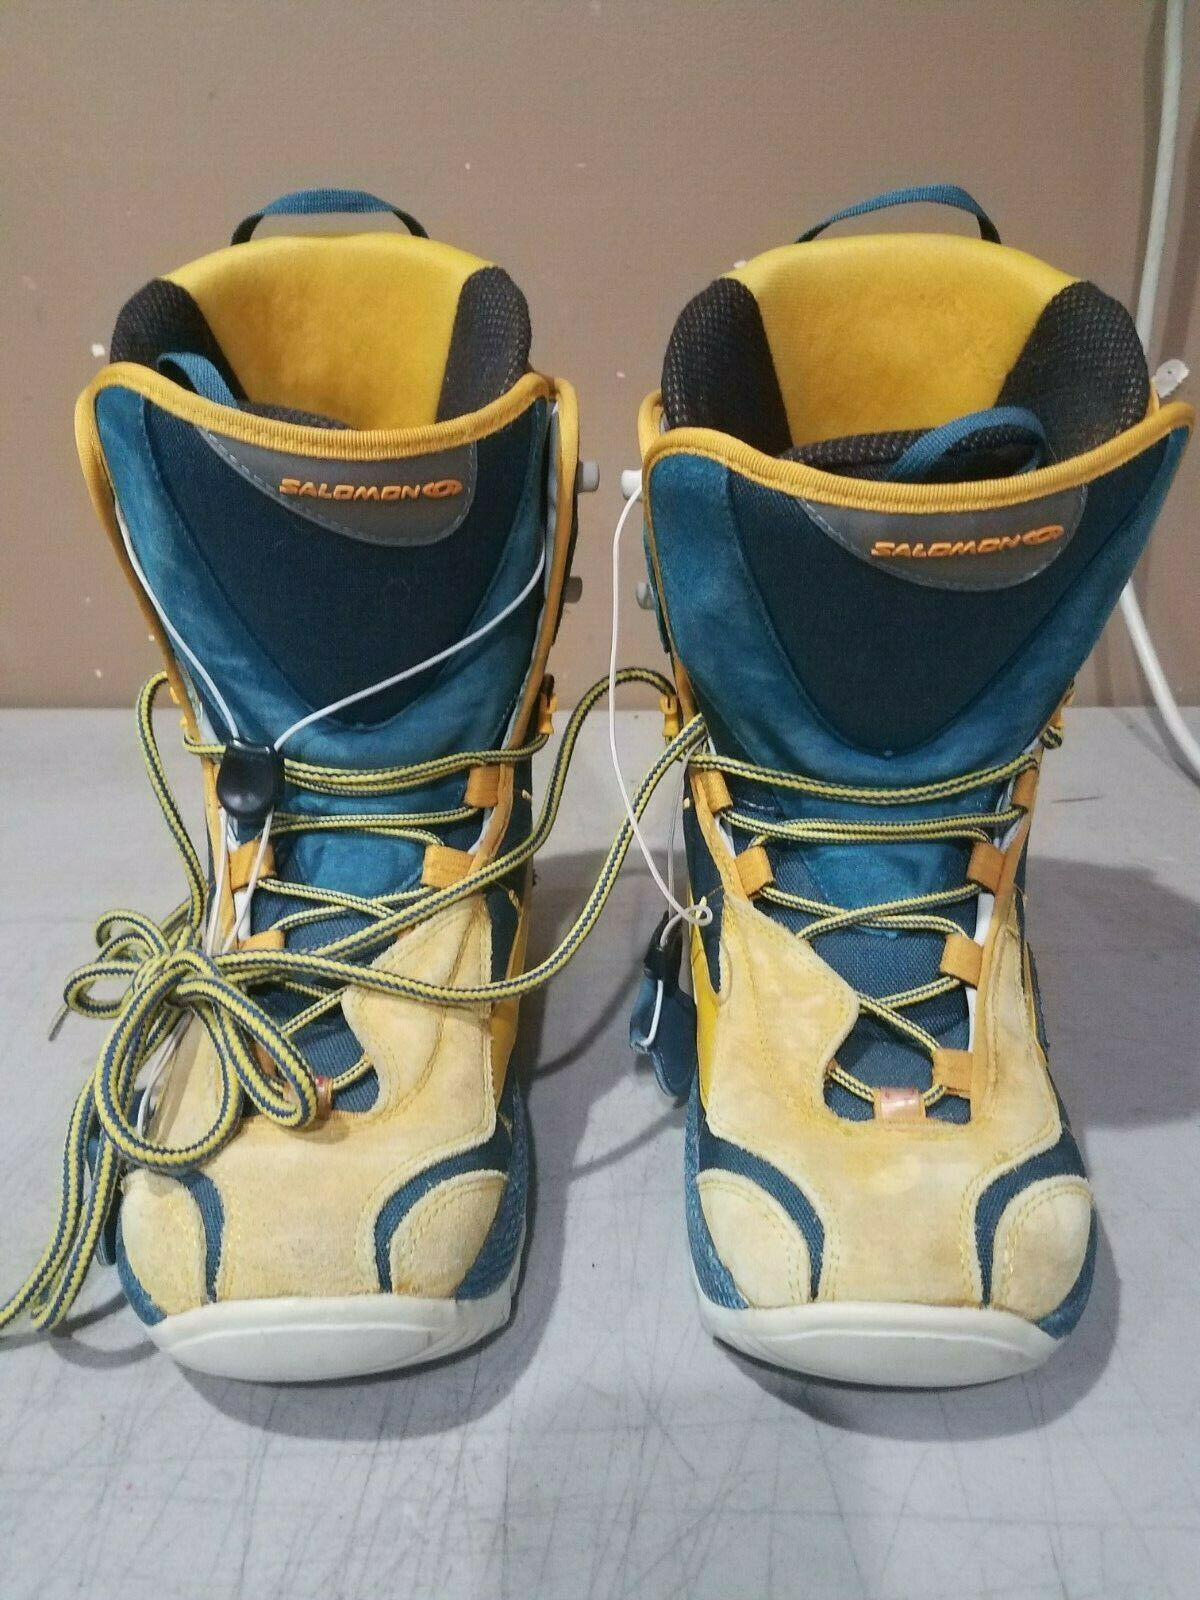 Salomon Malamute Unisex Size 8.5 Mens Women's 10.5 blueee Yellow FREE SHIP